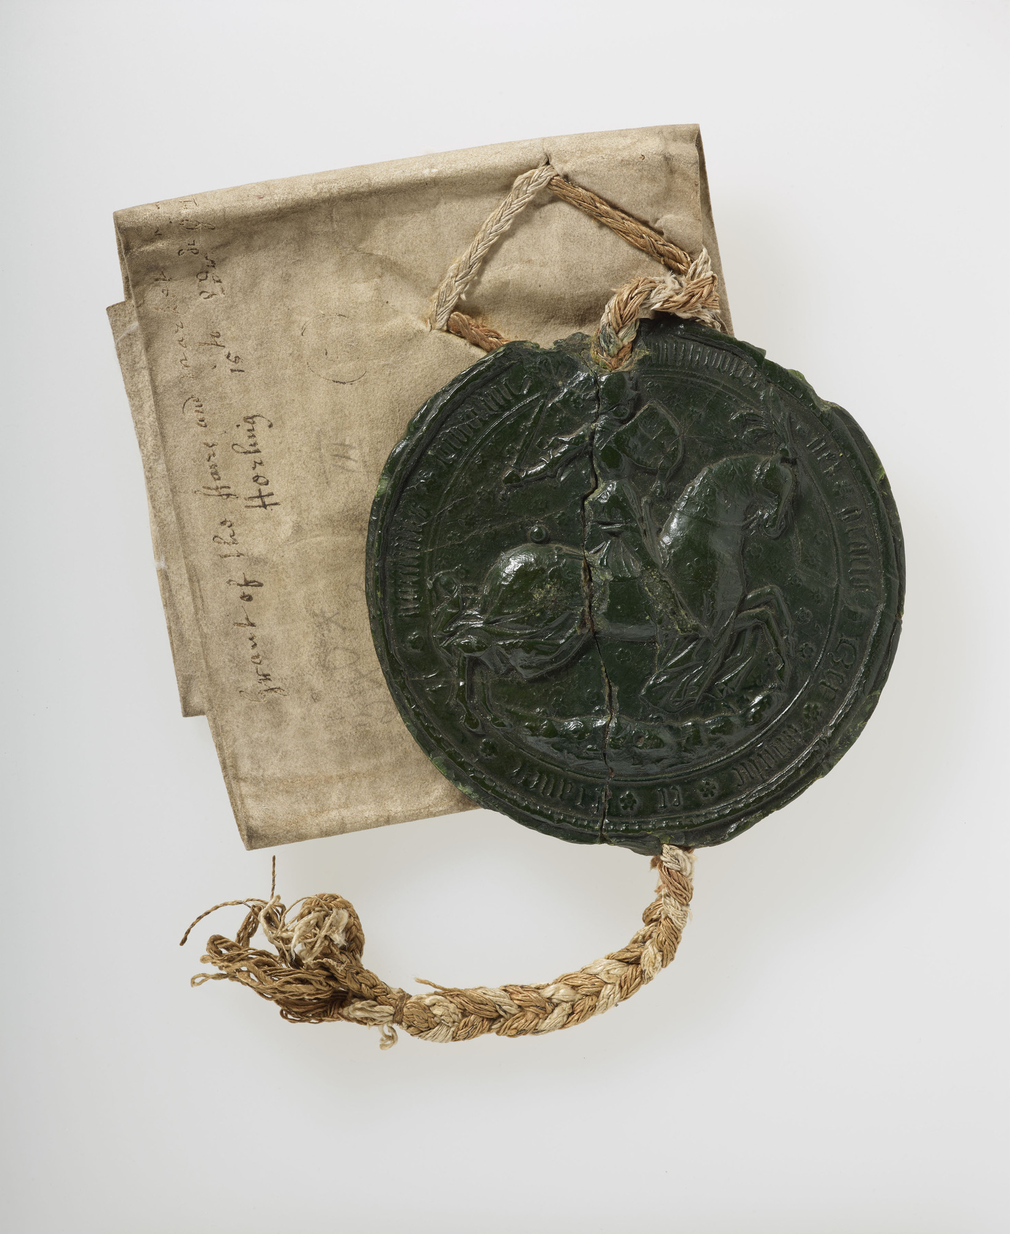 A vellum deed with black wax seal attached.Obverse of seal with enthroned Edward III, flanked by Royal coat of arms (England & France quartered); reverse with Edward III in armour, on horseback. Trellis decoration of flowers behind. Seal on a plaited silk